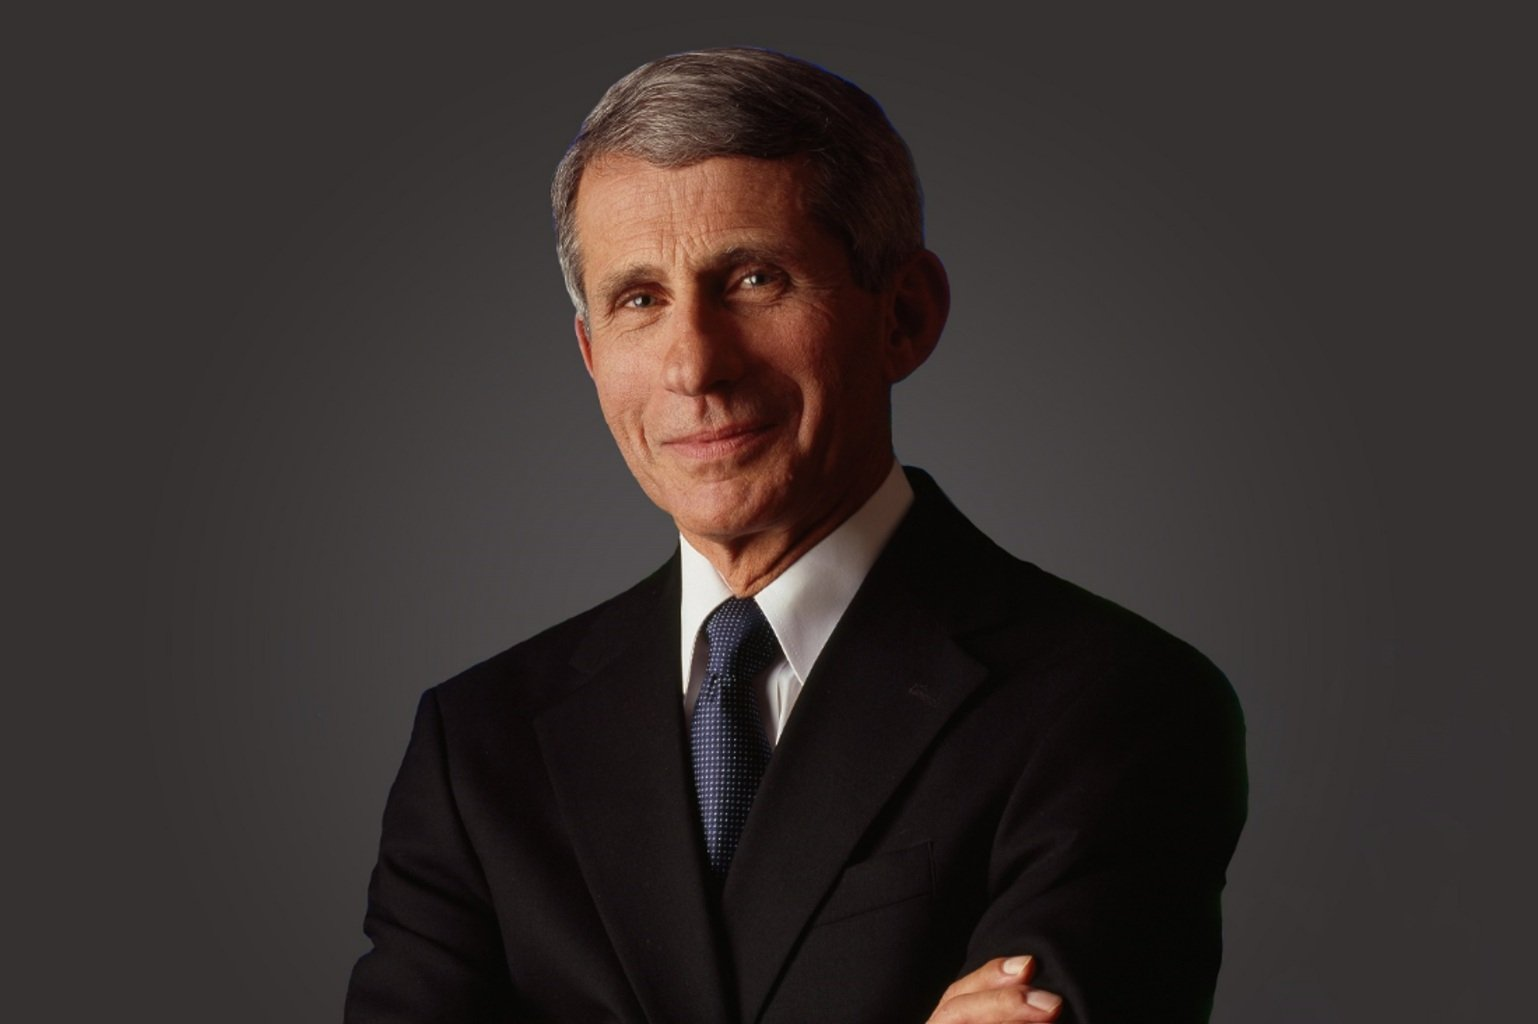 Wolters Kluwer and The John Adams Institute host a conversation with Dr. Anthony Fauci to discuss the COVID-19 pandemic and response, followed by panel on May 25